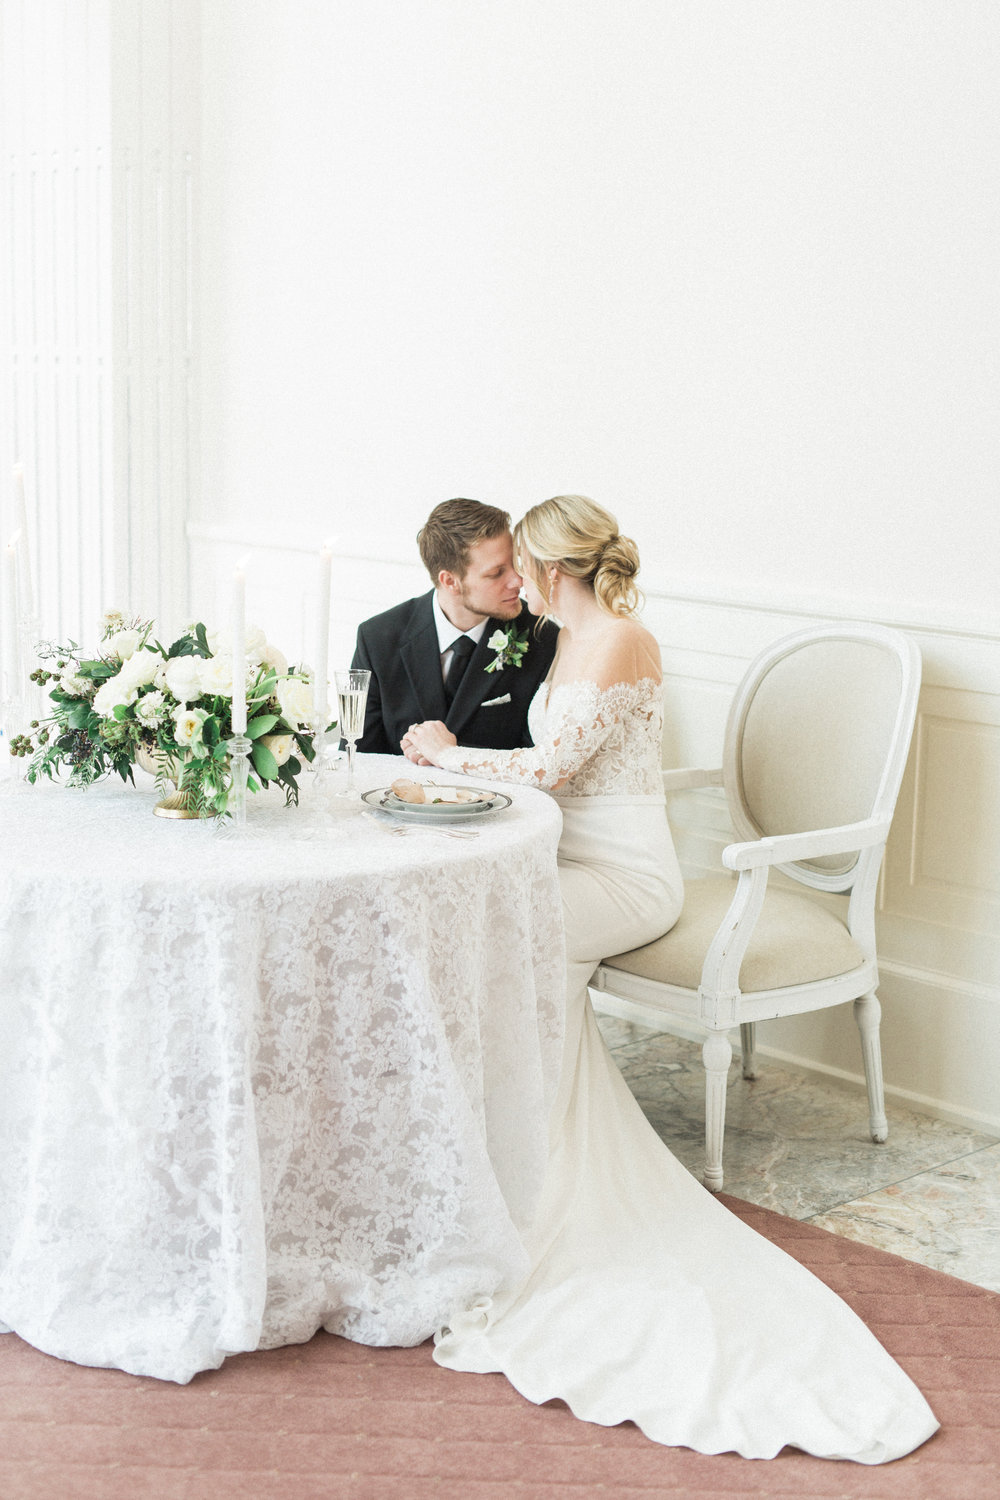 Intimate Wedding Sweetheart Table | Fine Art European Inspired Winter Wedding